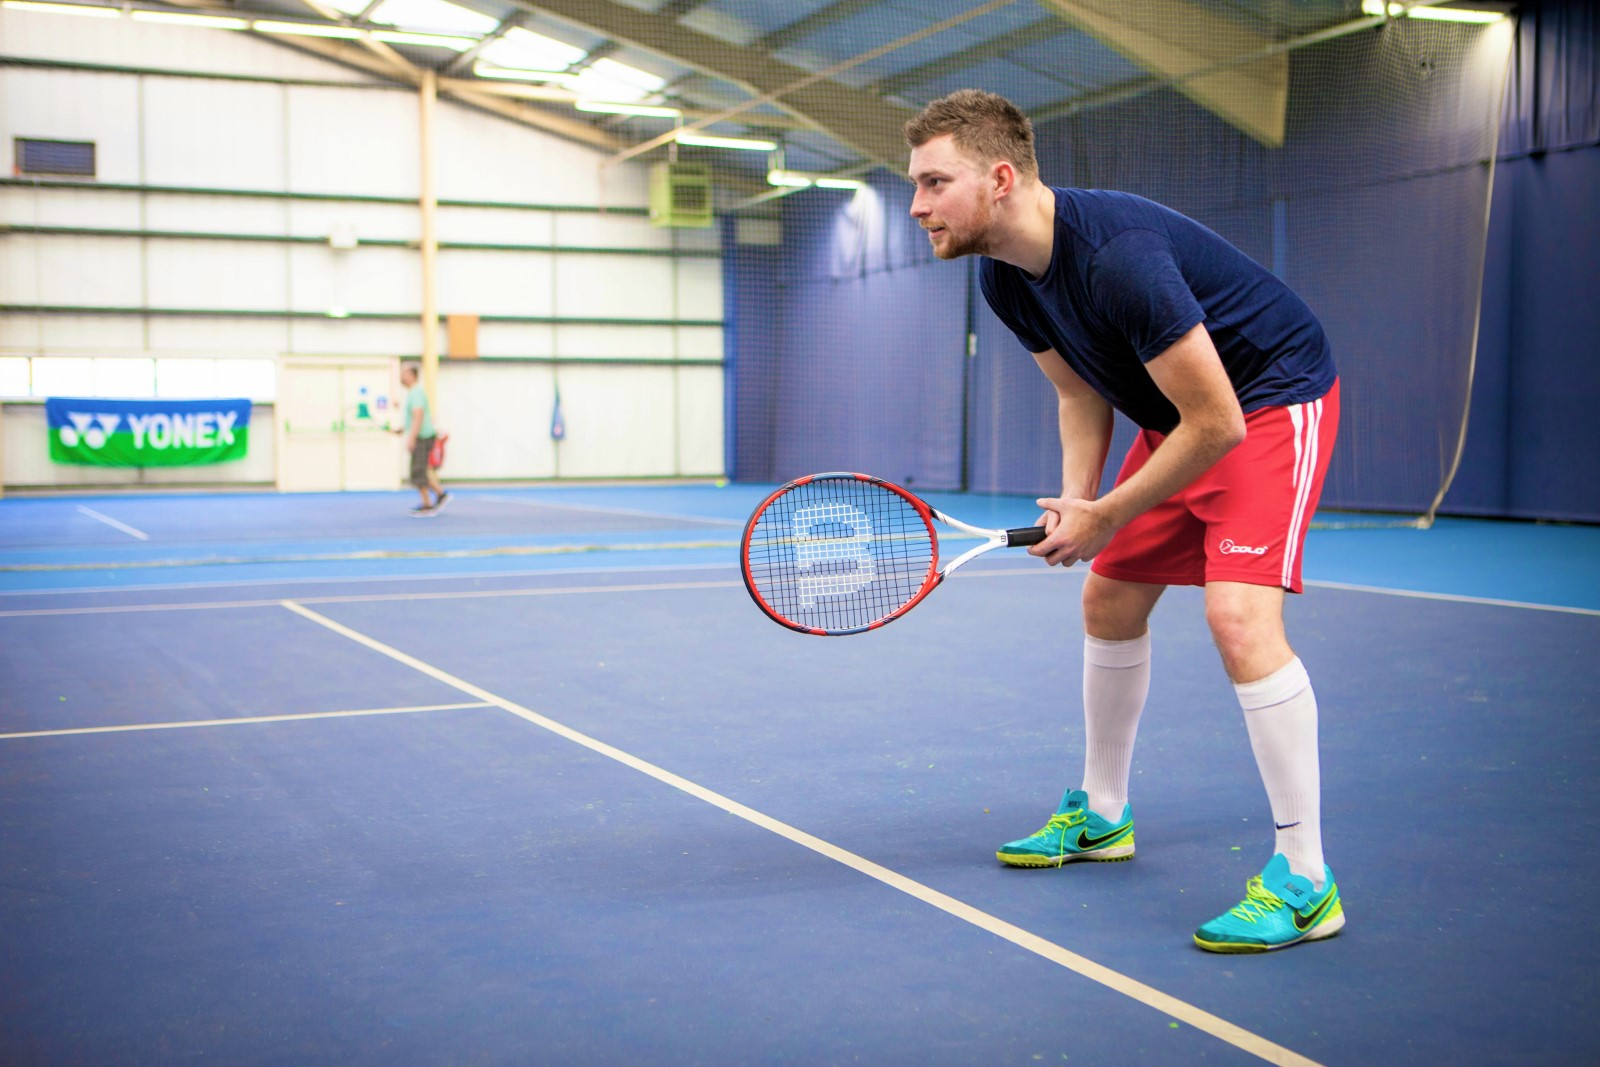 man in red shorts holding a tennis racket.jpg